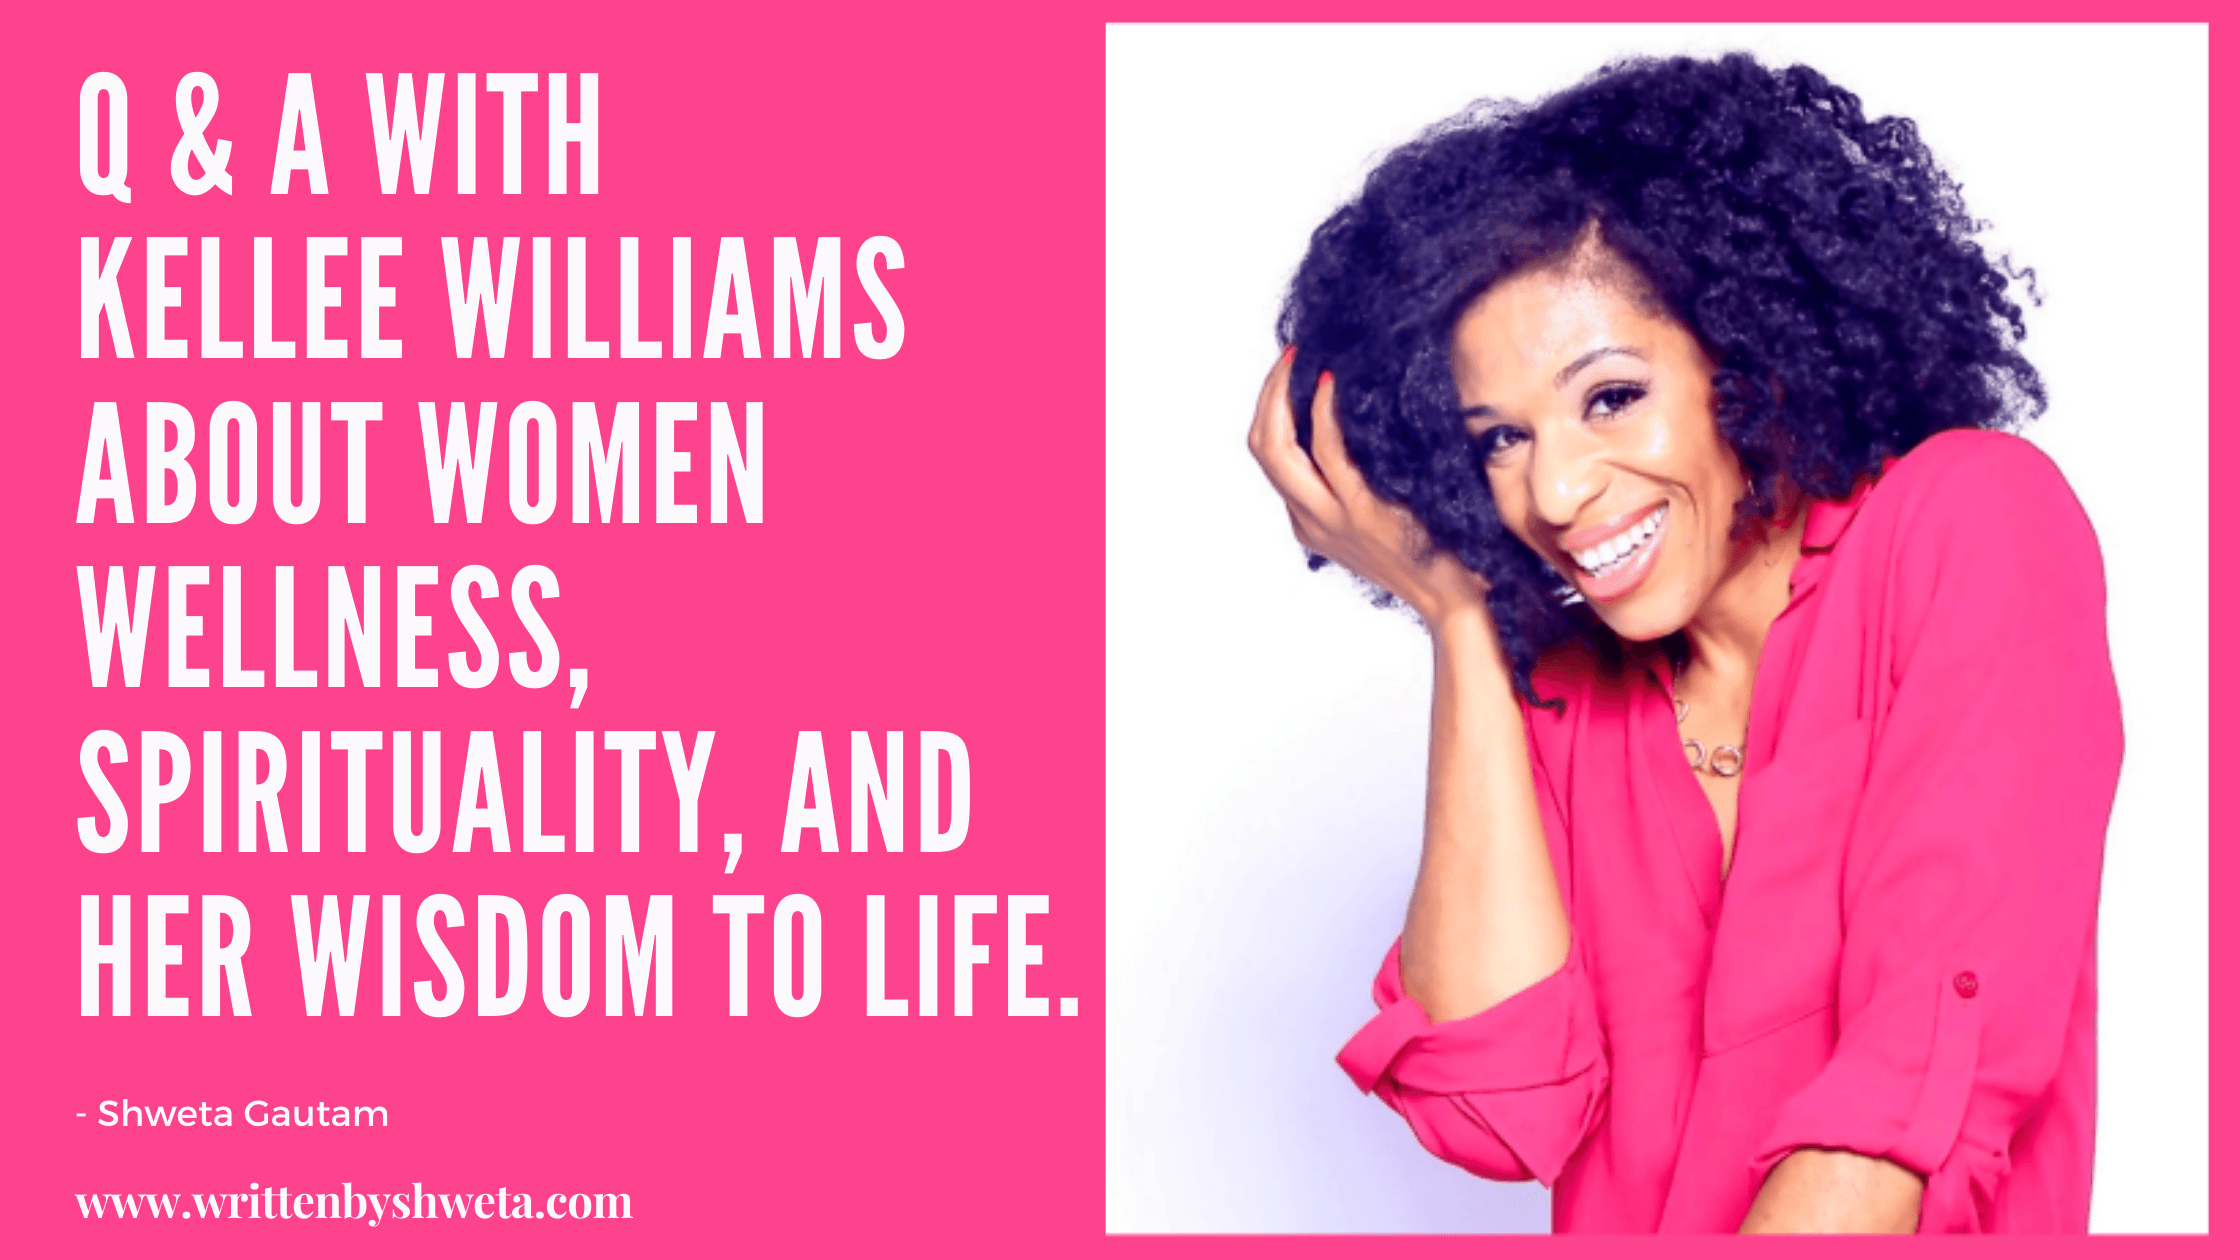 Q & A WITH KELLEE WILLIAMS ABOUT WOMEN WELLNESS, SPIRITUALTIY AND HER WISDOM TO LIFE